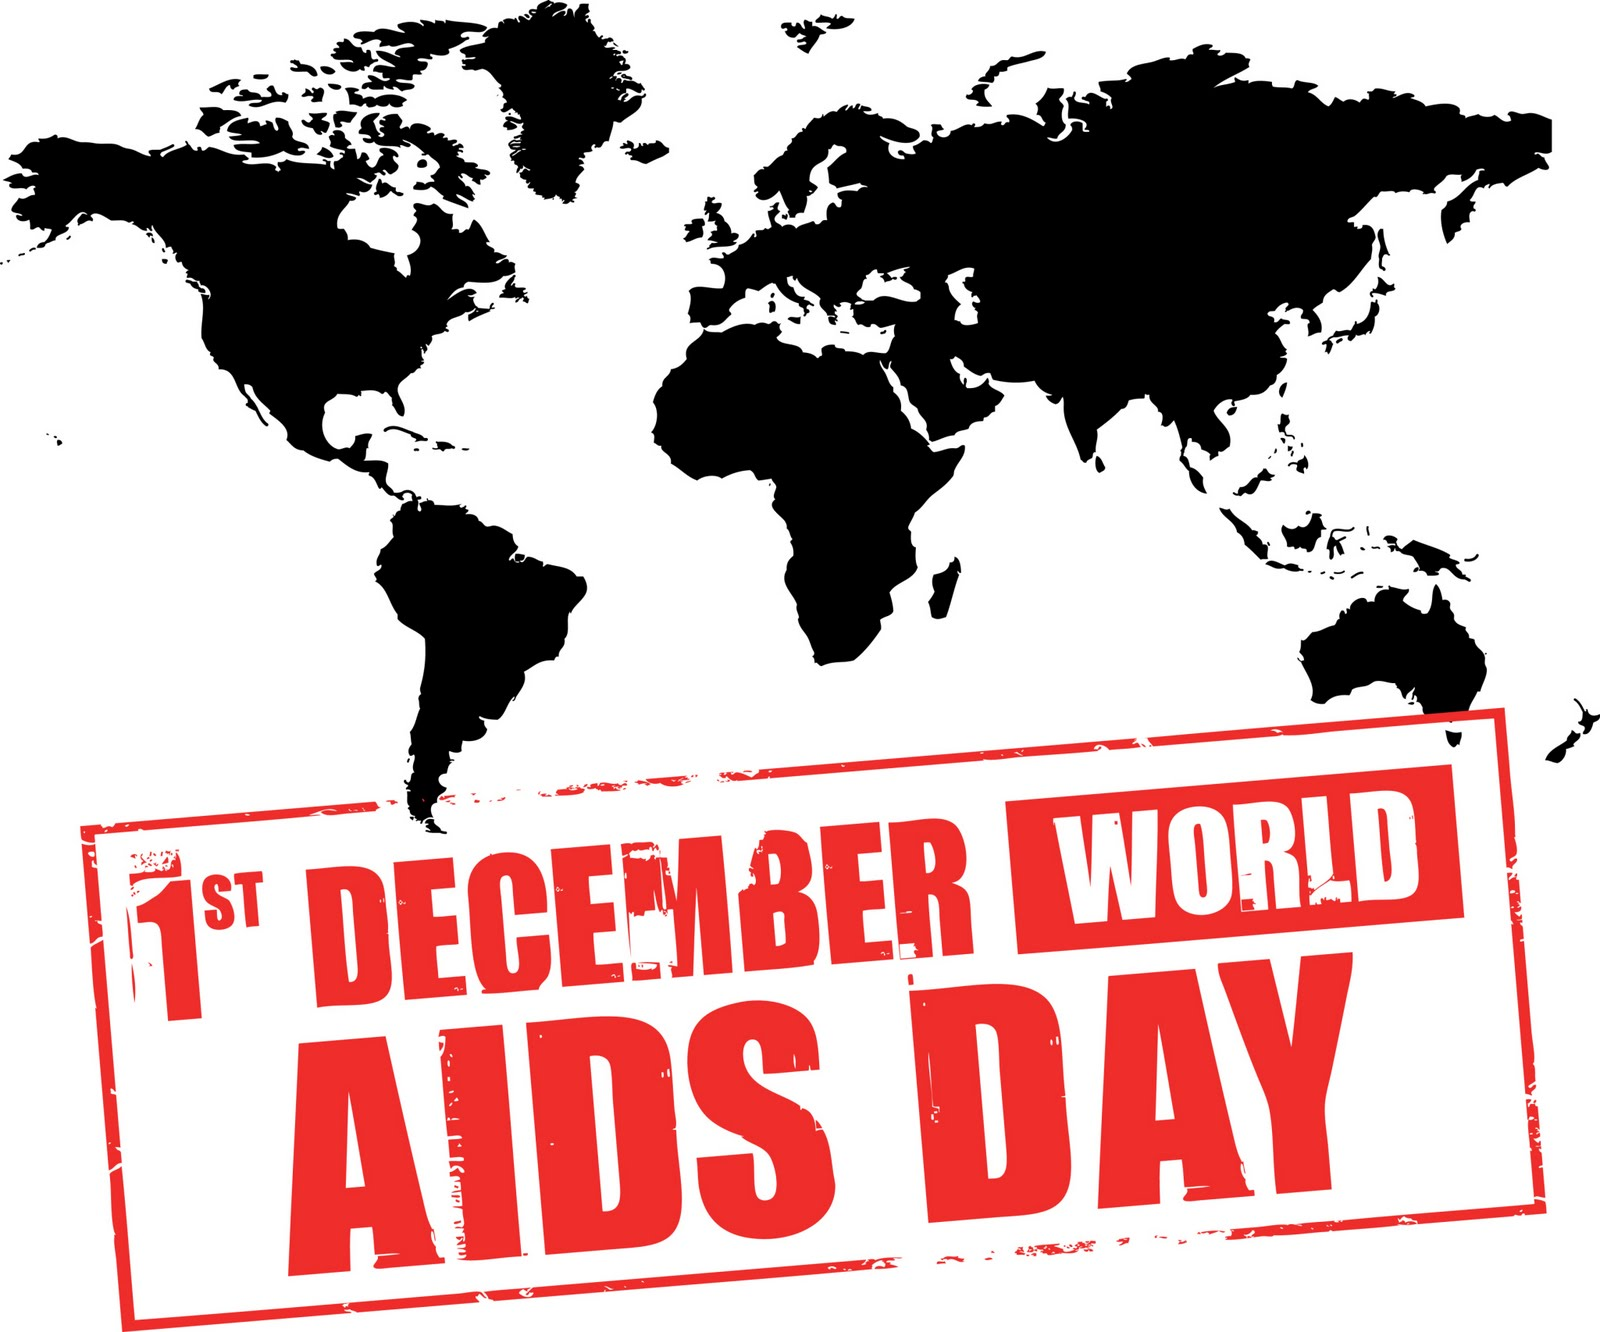 1st December world Aids day image